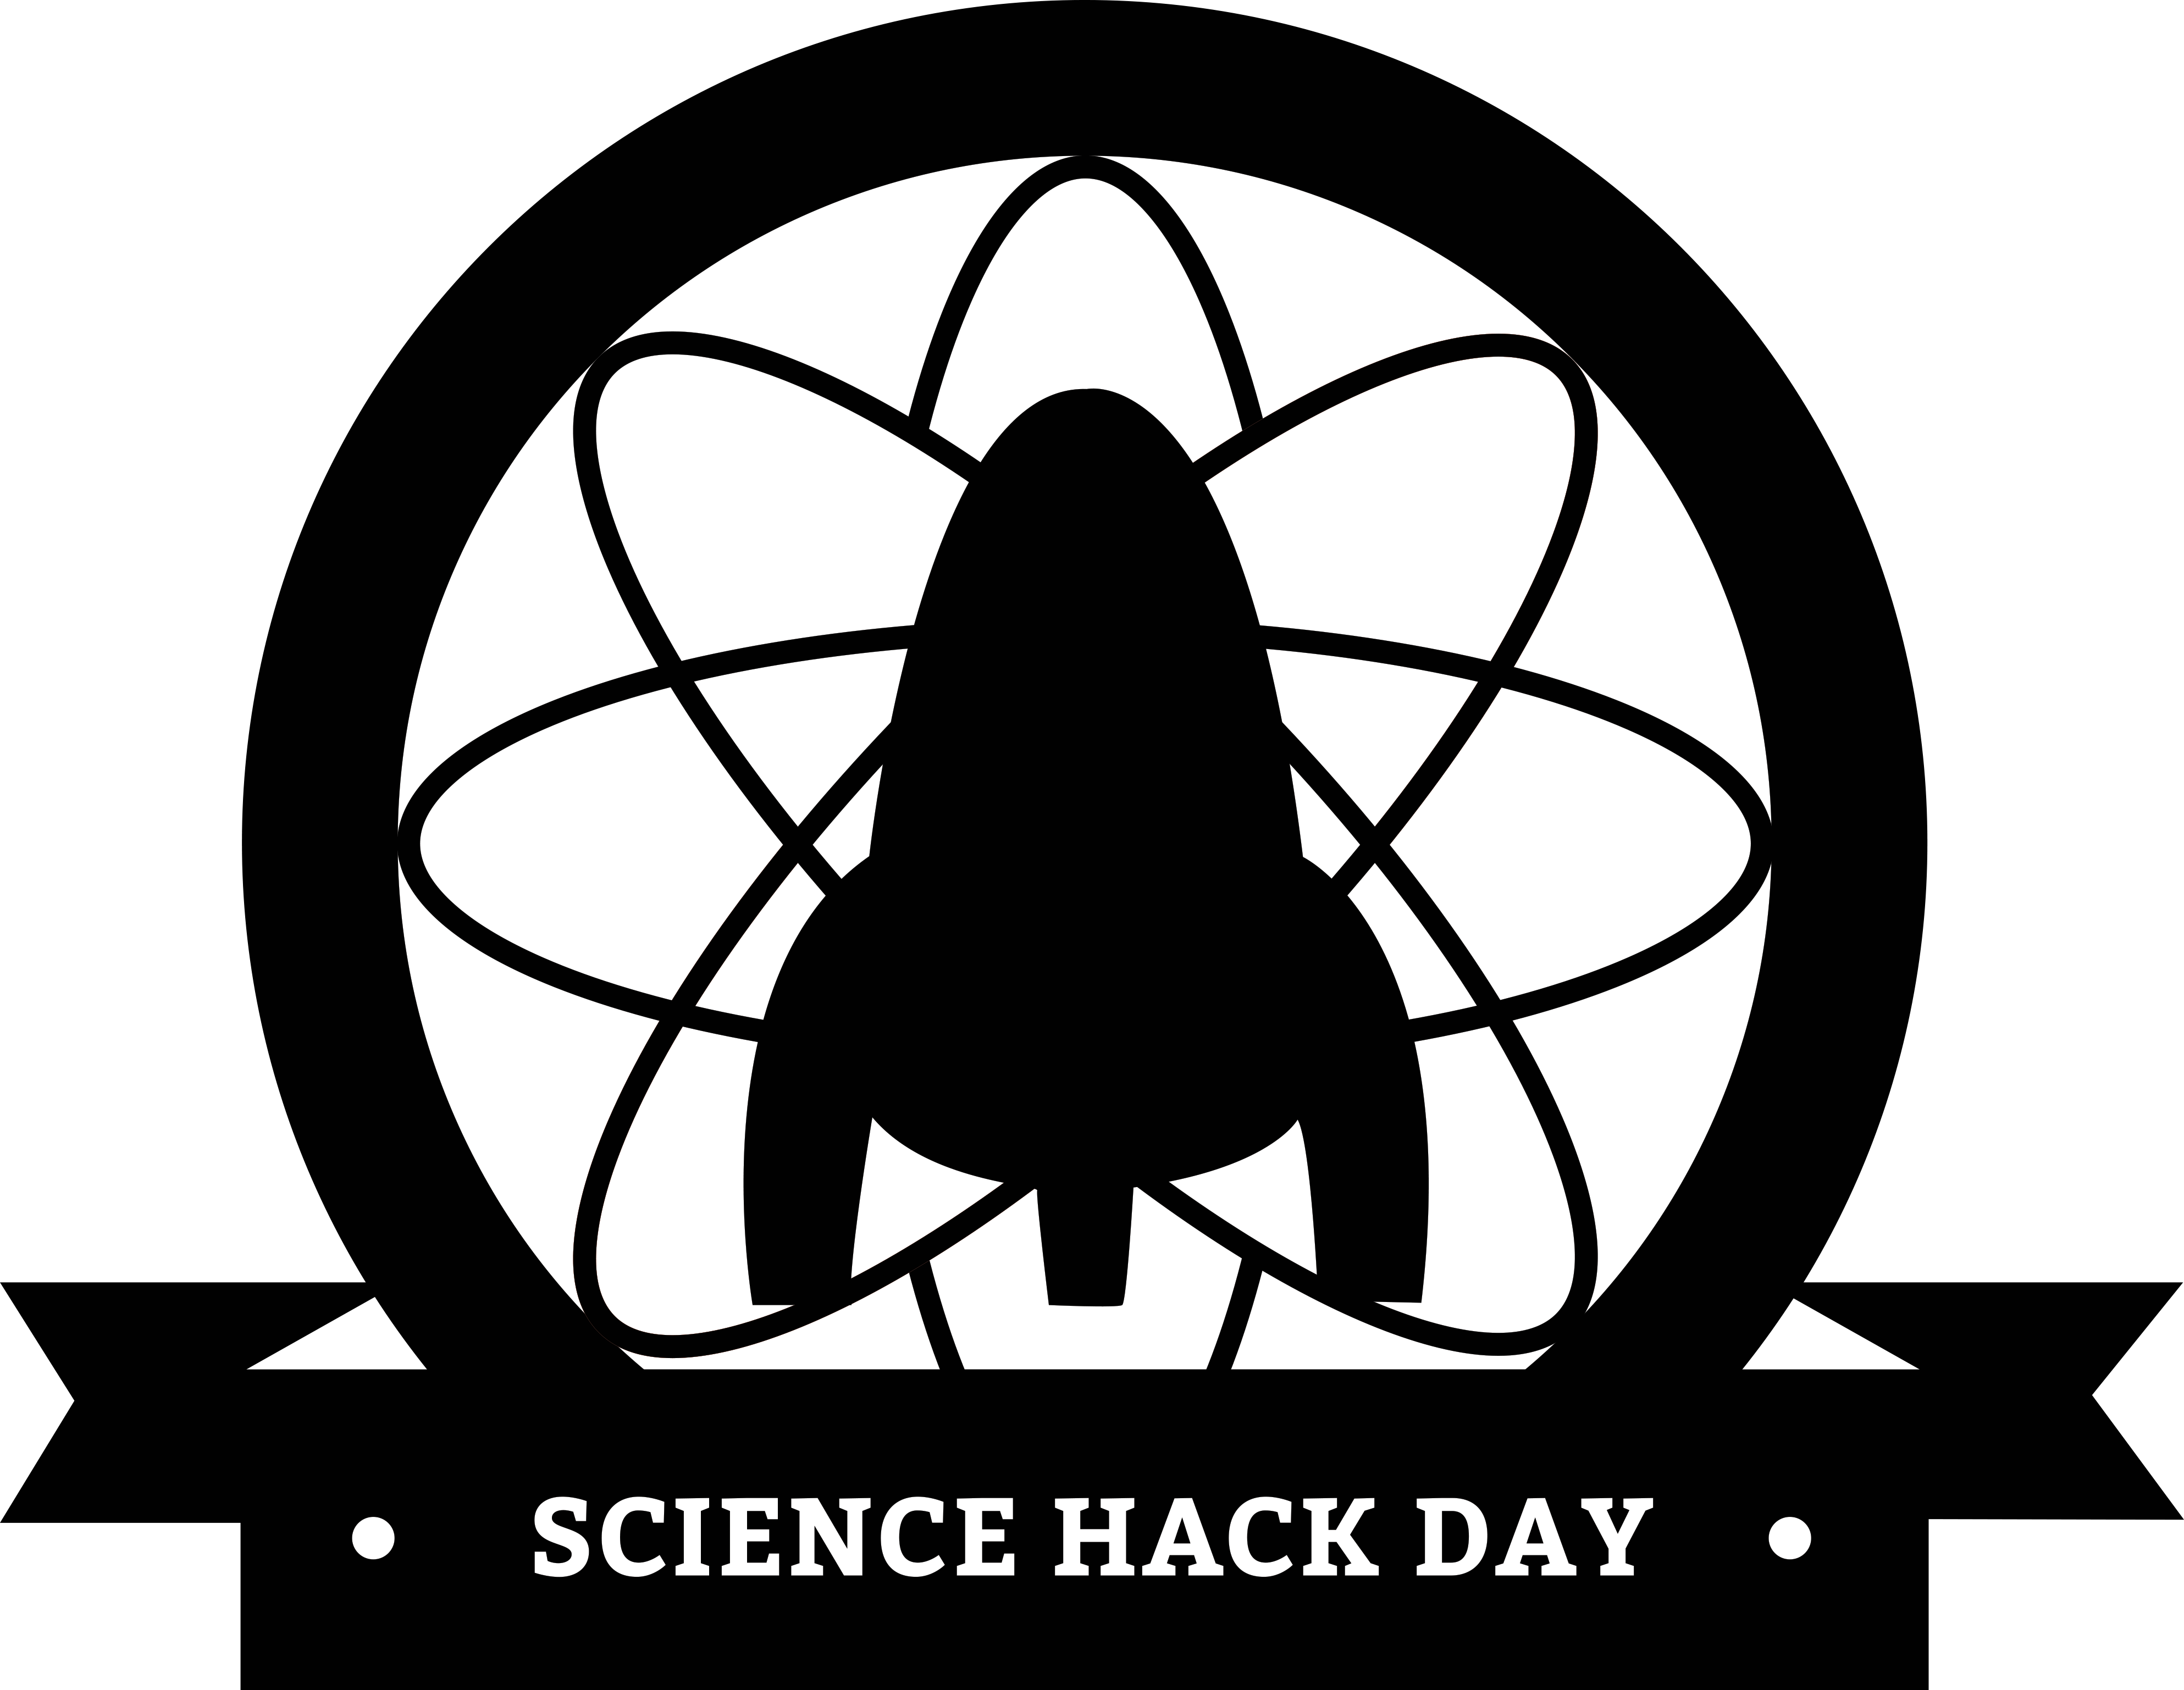 ScienceHackDay